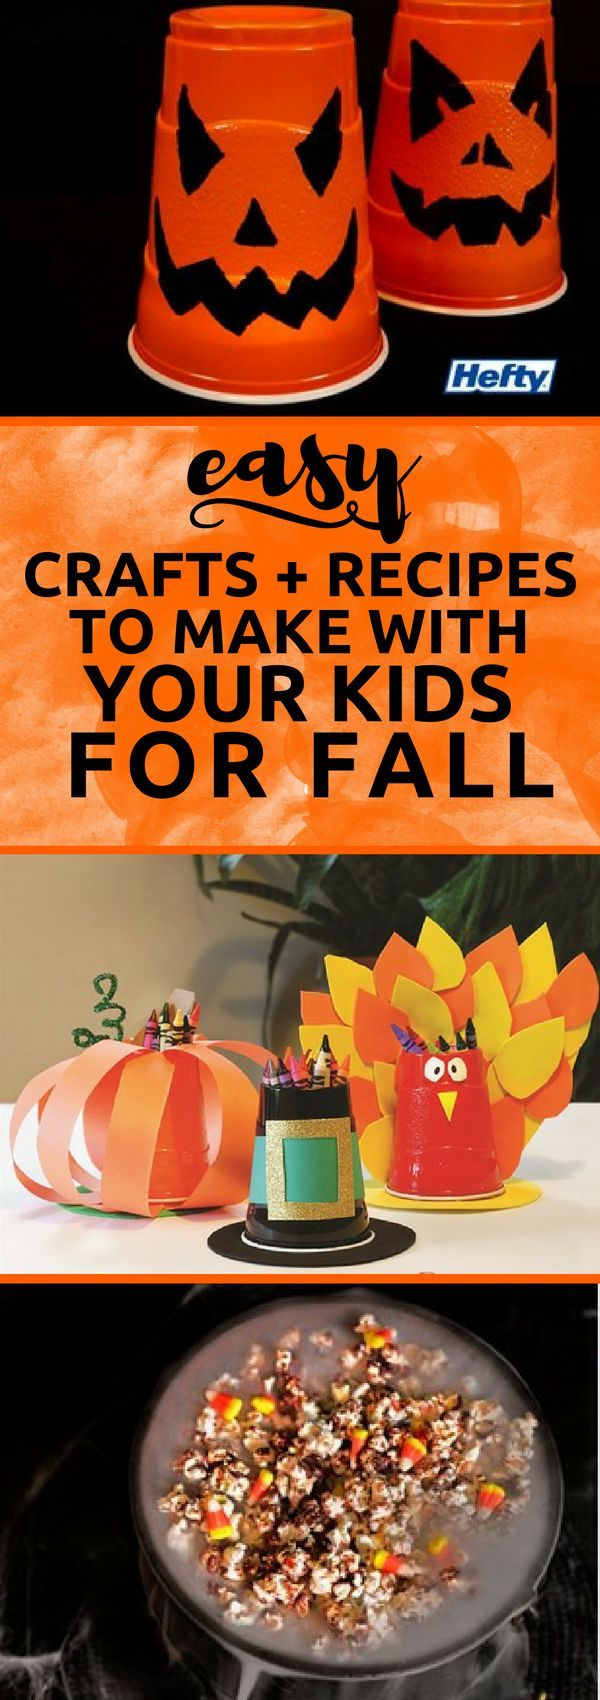 Easy Halloween crafts and recipes to make with your kids this fall! #ad #Hefty